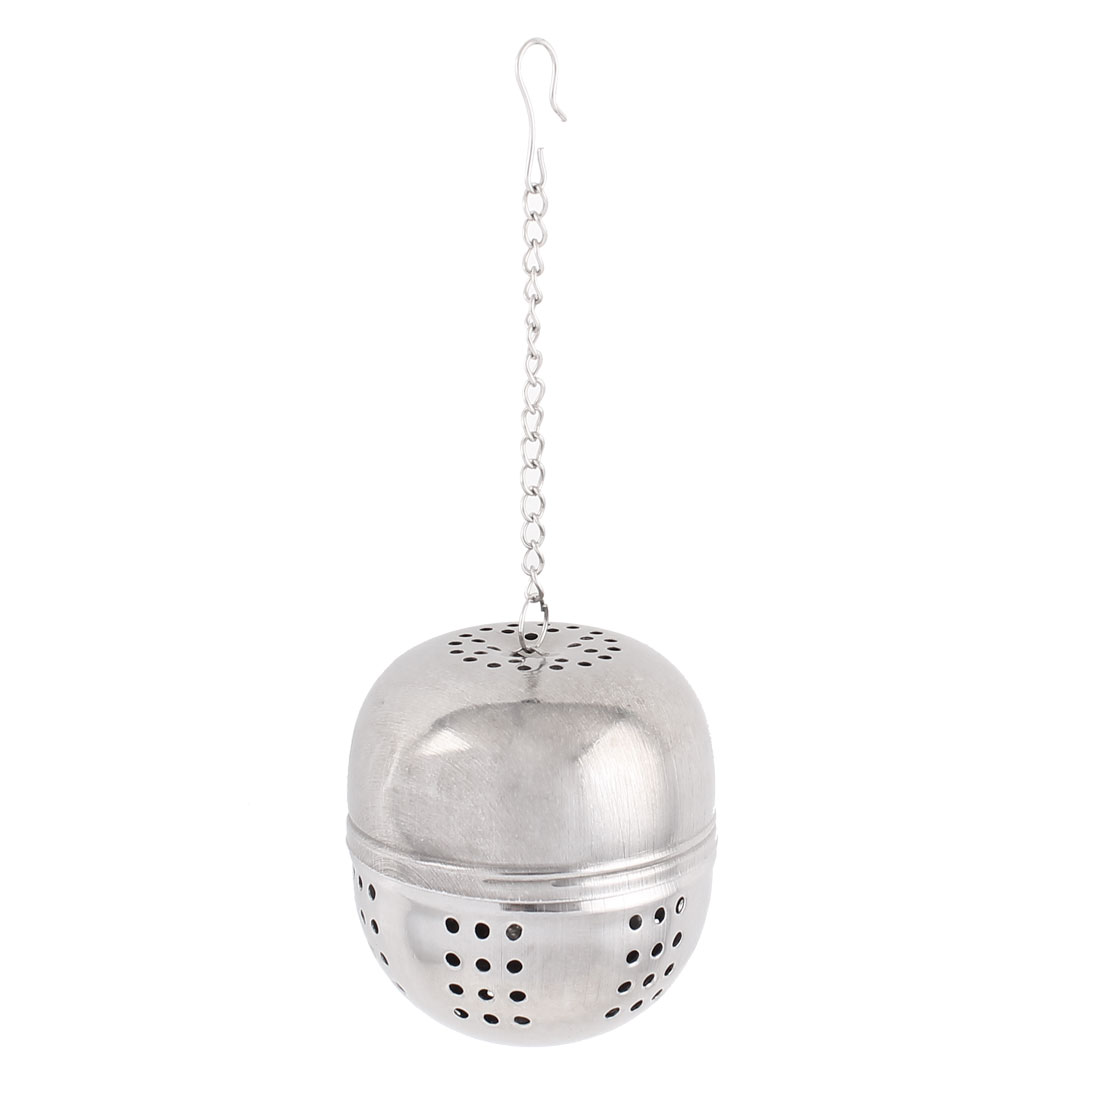 Kitchen 55mm Dia Stainless Steel Ball Strainer Tea Leaf Spice Perfume Infuser